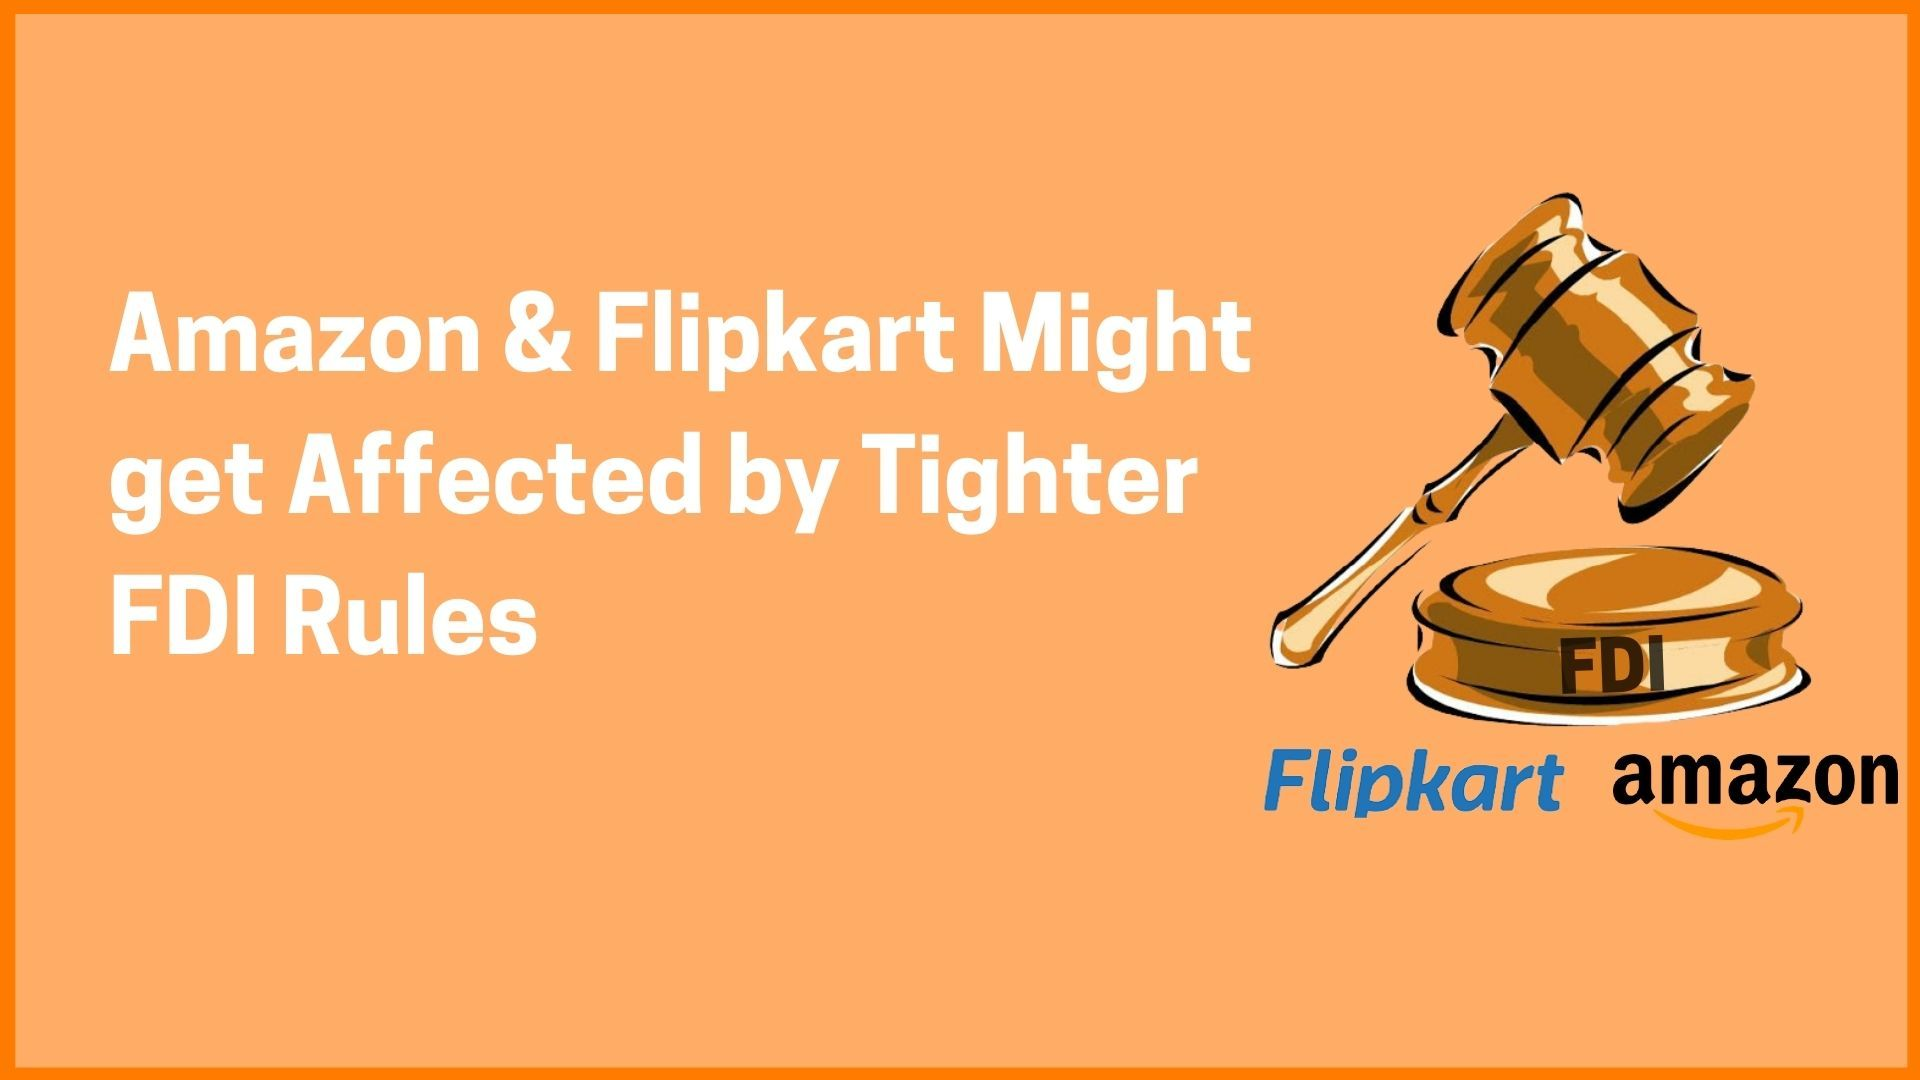 The Curious Case of Amazon, Flipkart & FDI - The Impact of New FDI Rules